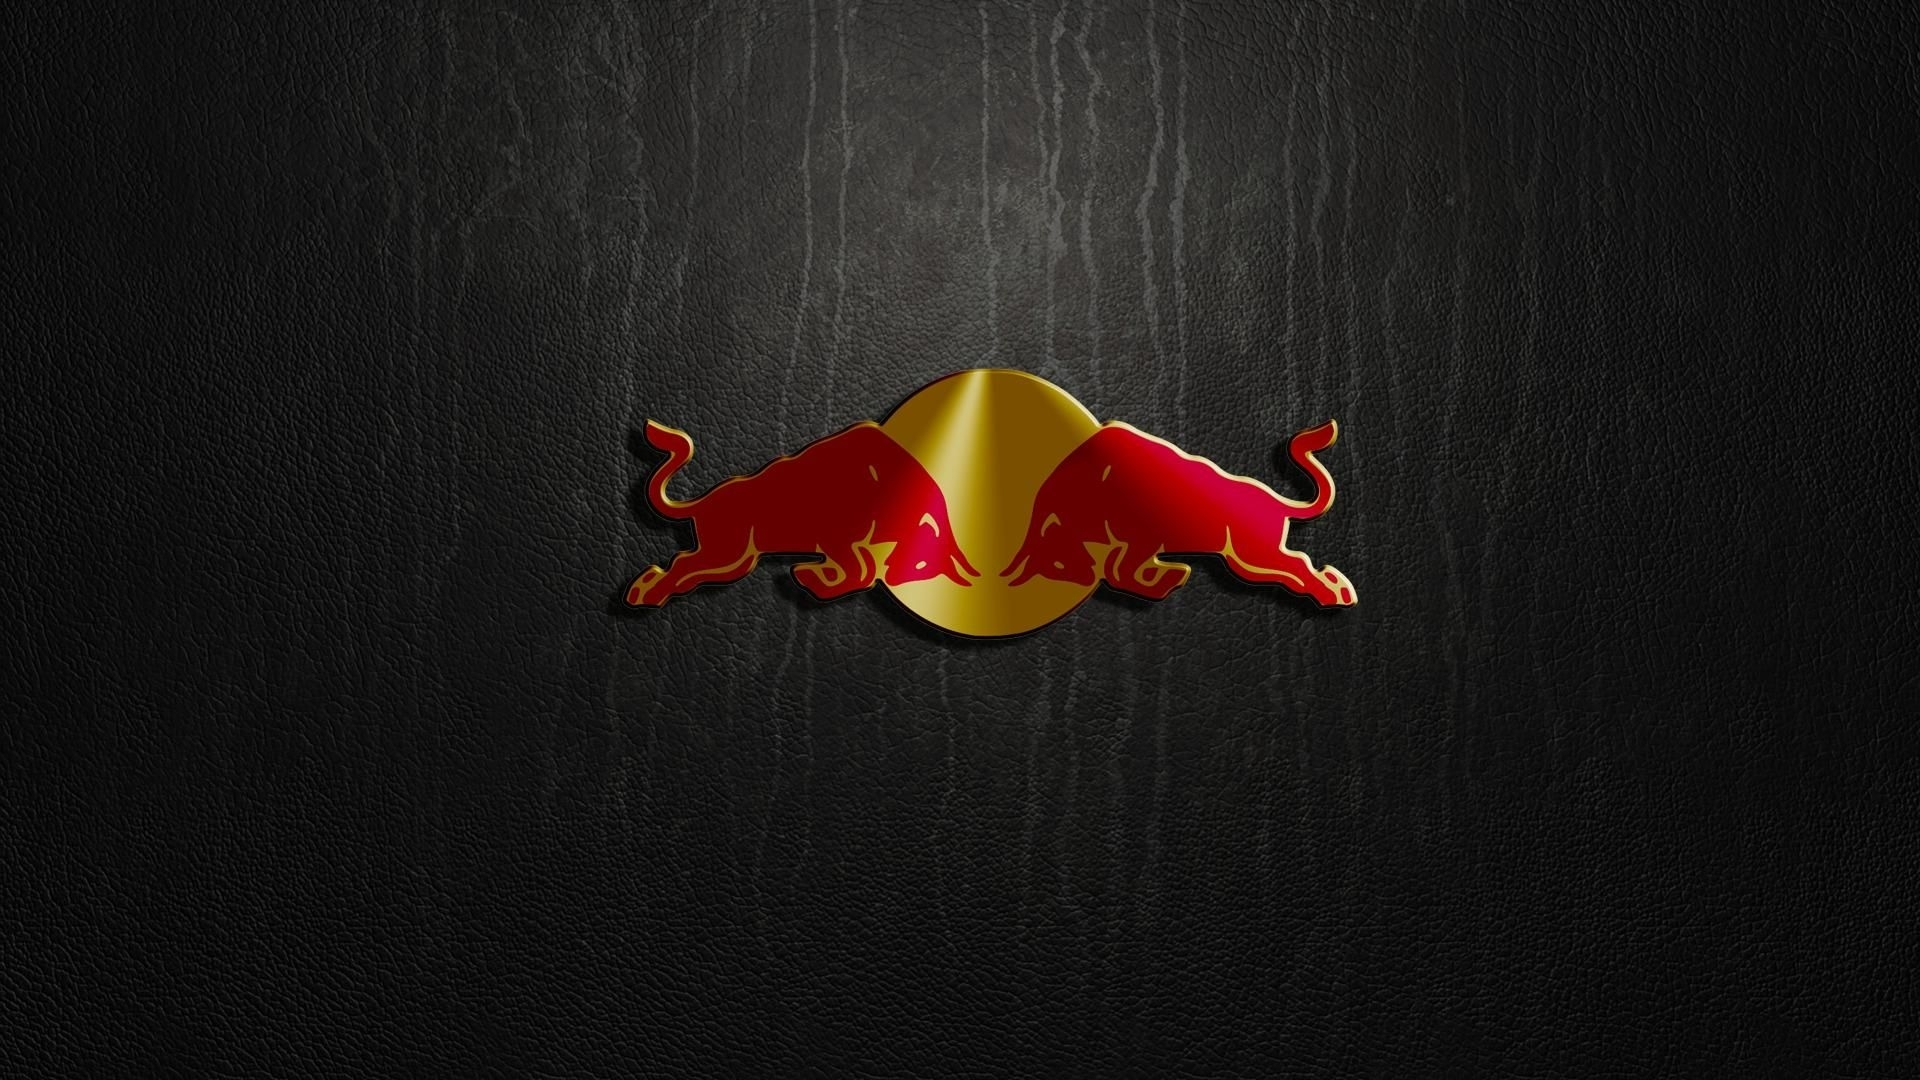 10 Latest Red Bull Racing Wallpaper Full Hd 1080p For Pc: 10 Latest Red Bull Logo Wallpaper FULL HD 1080p For PC